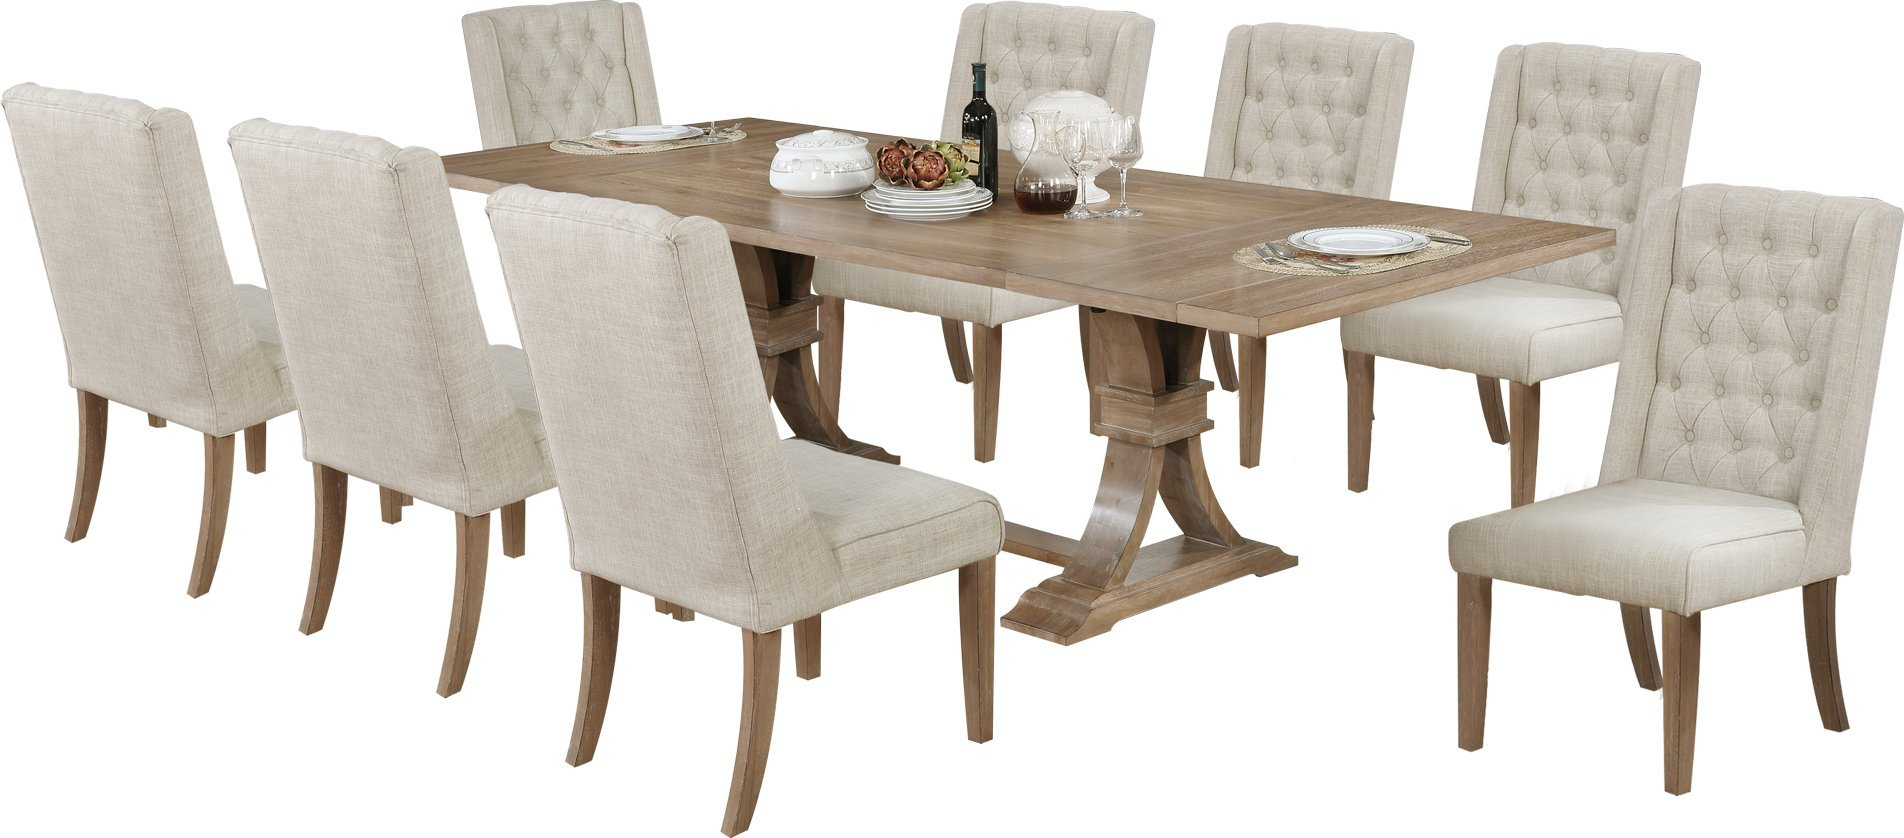 Best Quality Furniture D379PCSet 9PC Dining Set, Beige by Best Quality